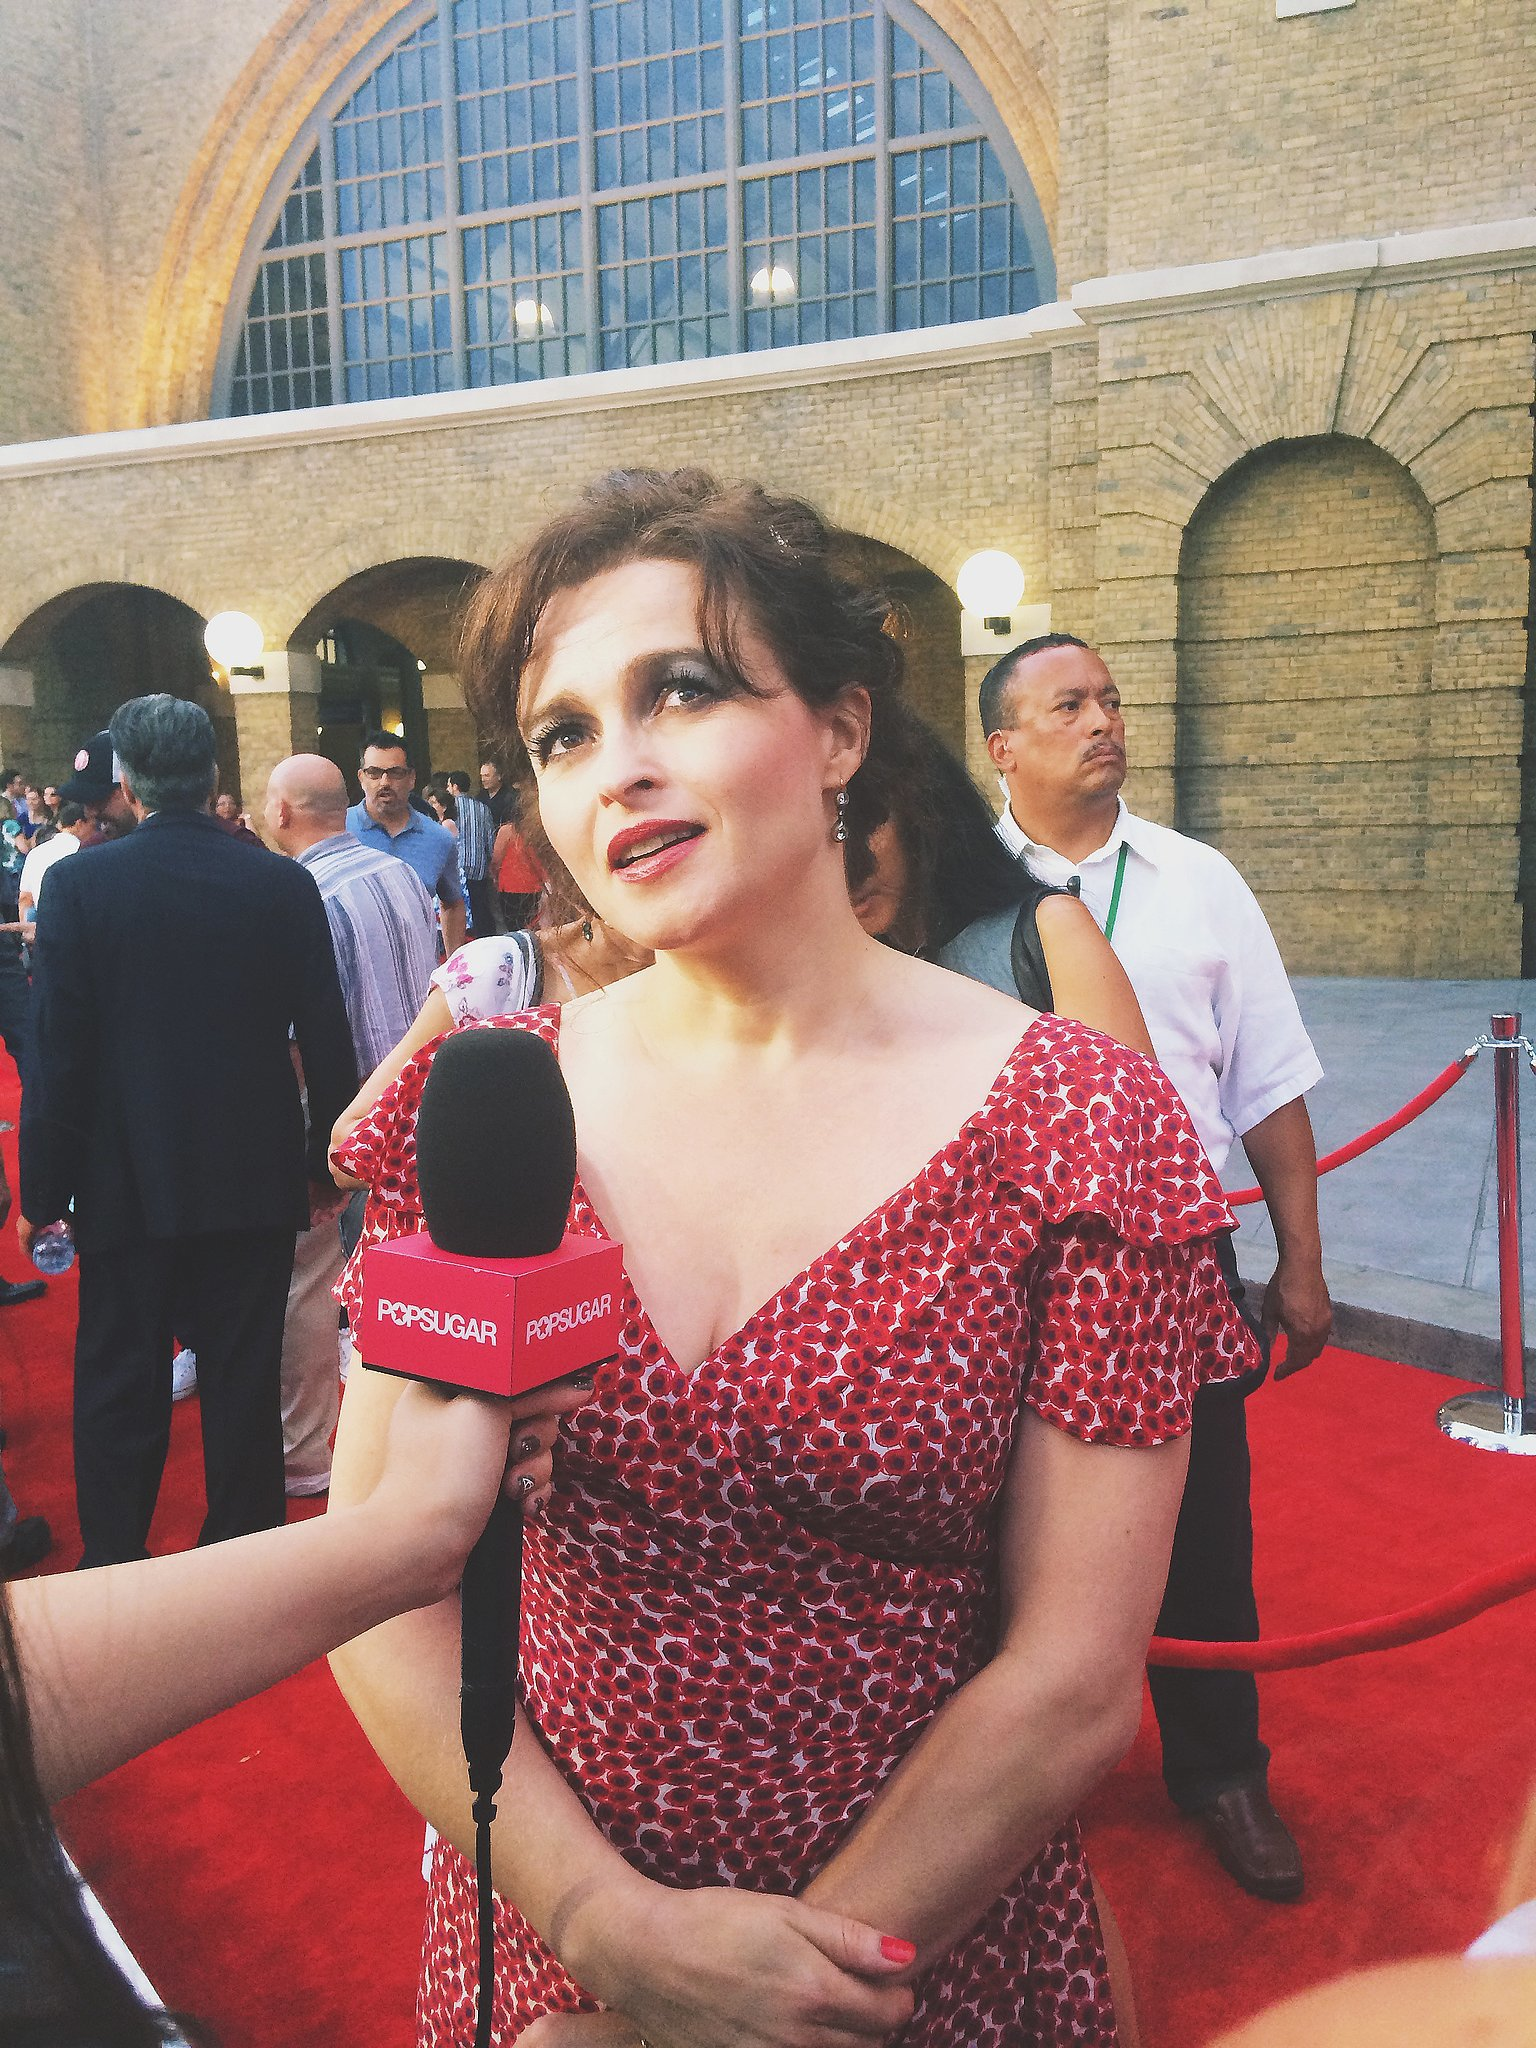 Helena Bonham Carter is a goddess, and she was radiant as always on the red carpet. She is much nicer (thankfully) than her evil onscreen counterpart Bellatrix Lestrange